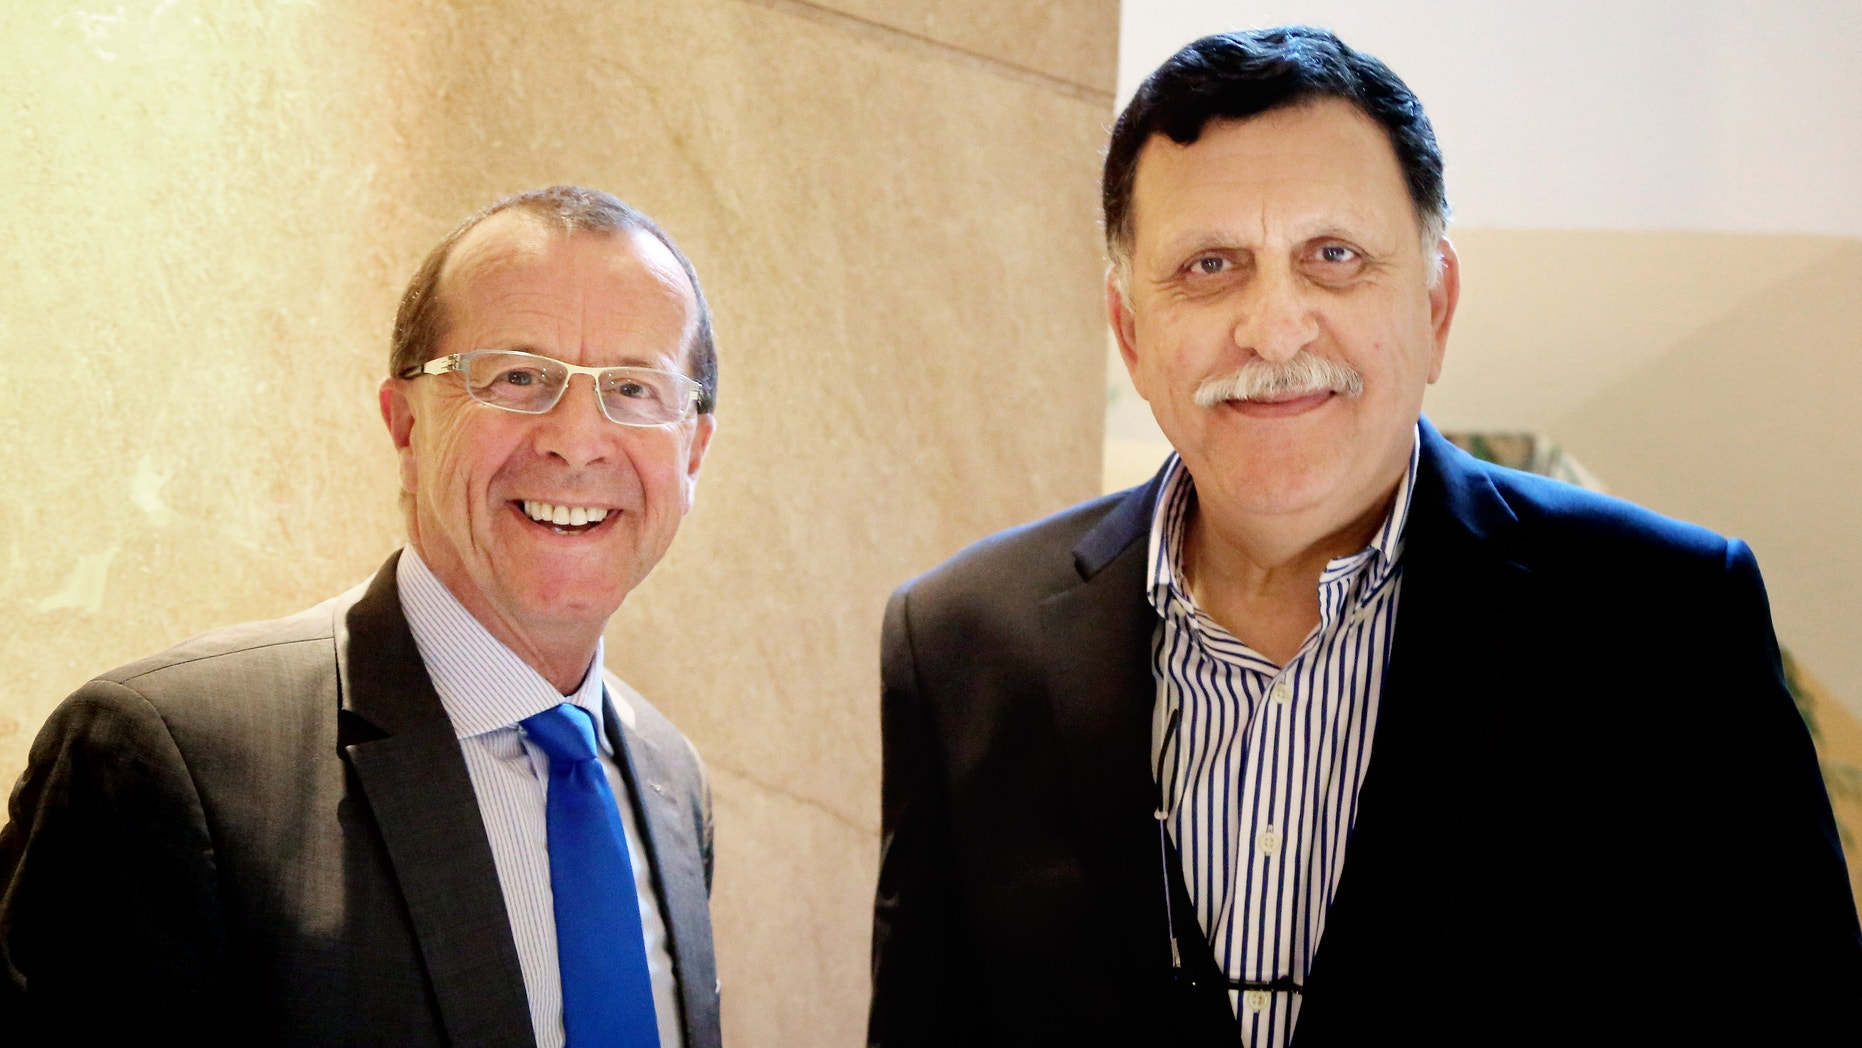 U.N. special envoy for Libya Martin Kobler, left, is greeted in Cairo by Fayez Serraj, Libyan designated-prime minister and head of the presidential council, in February.